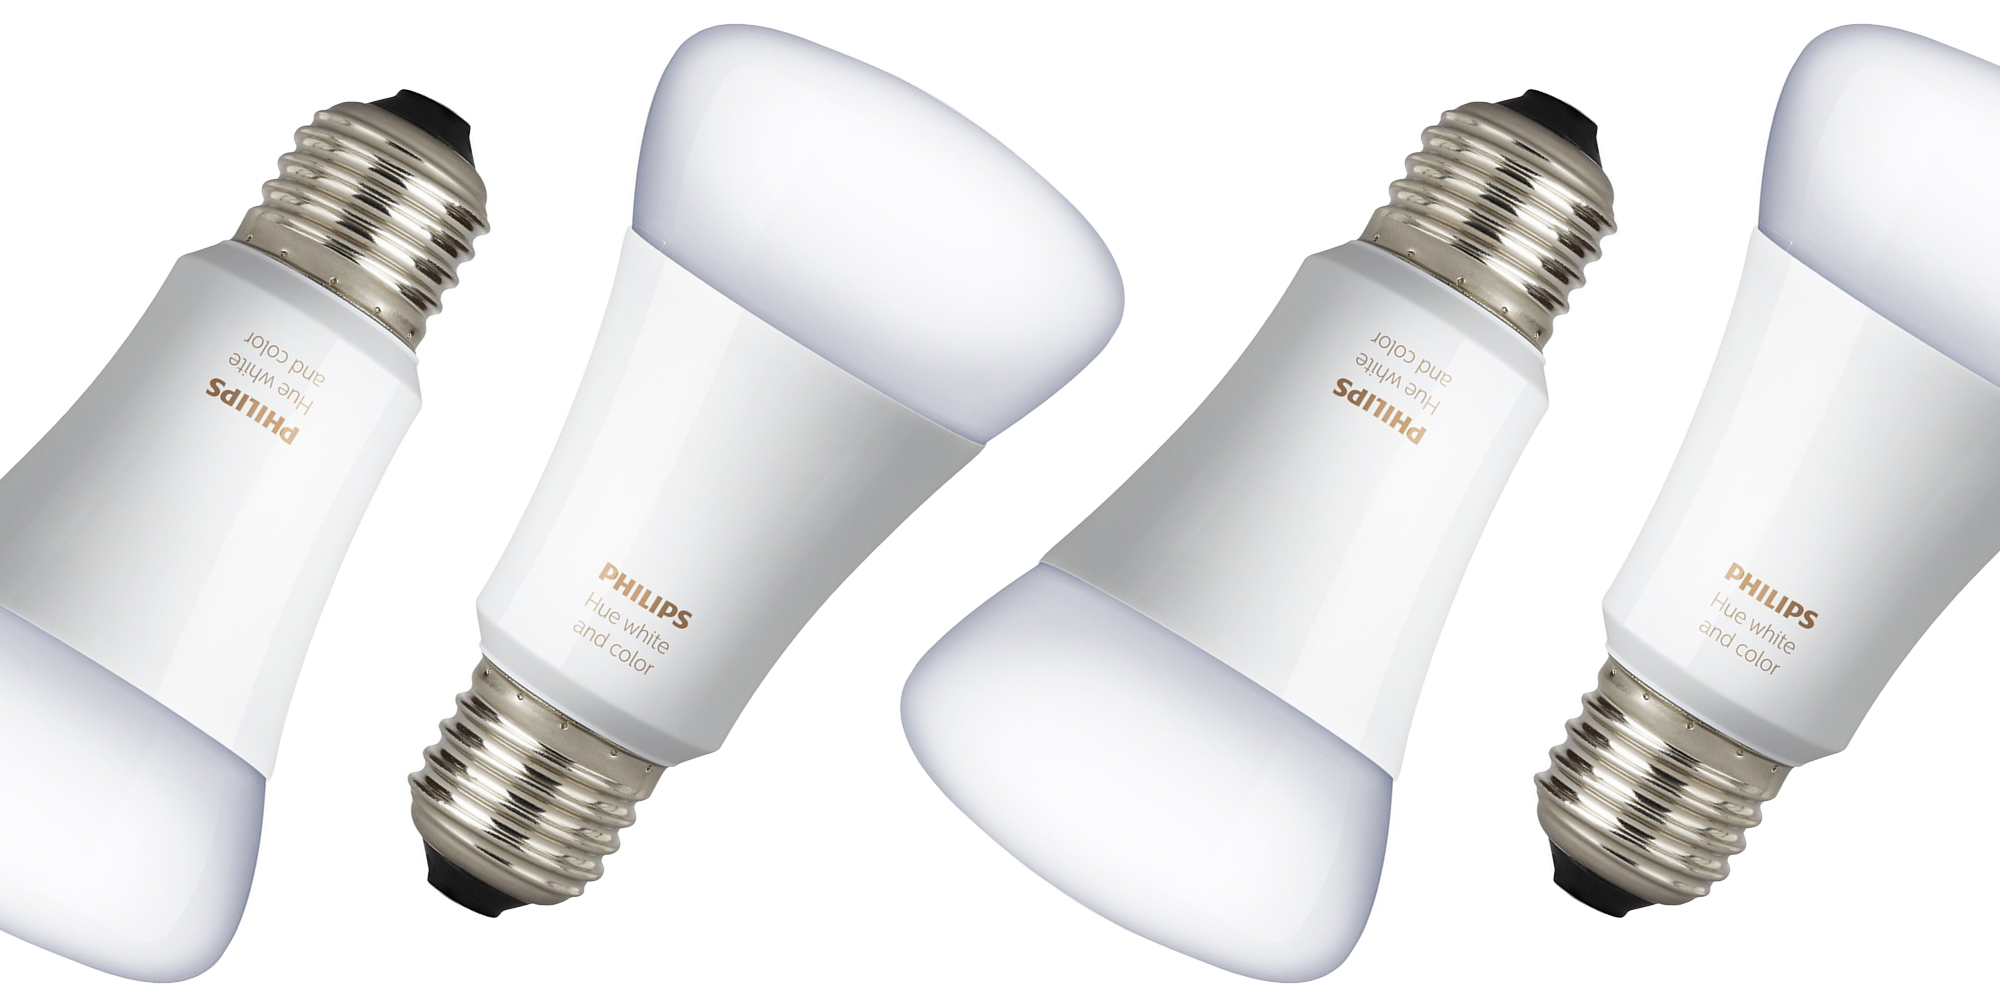 Philips Hue Color Led Light Bulbs Are At The Lowest Price